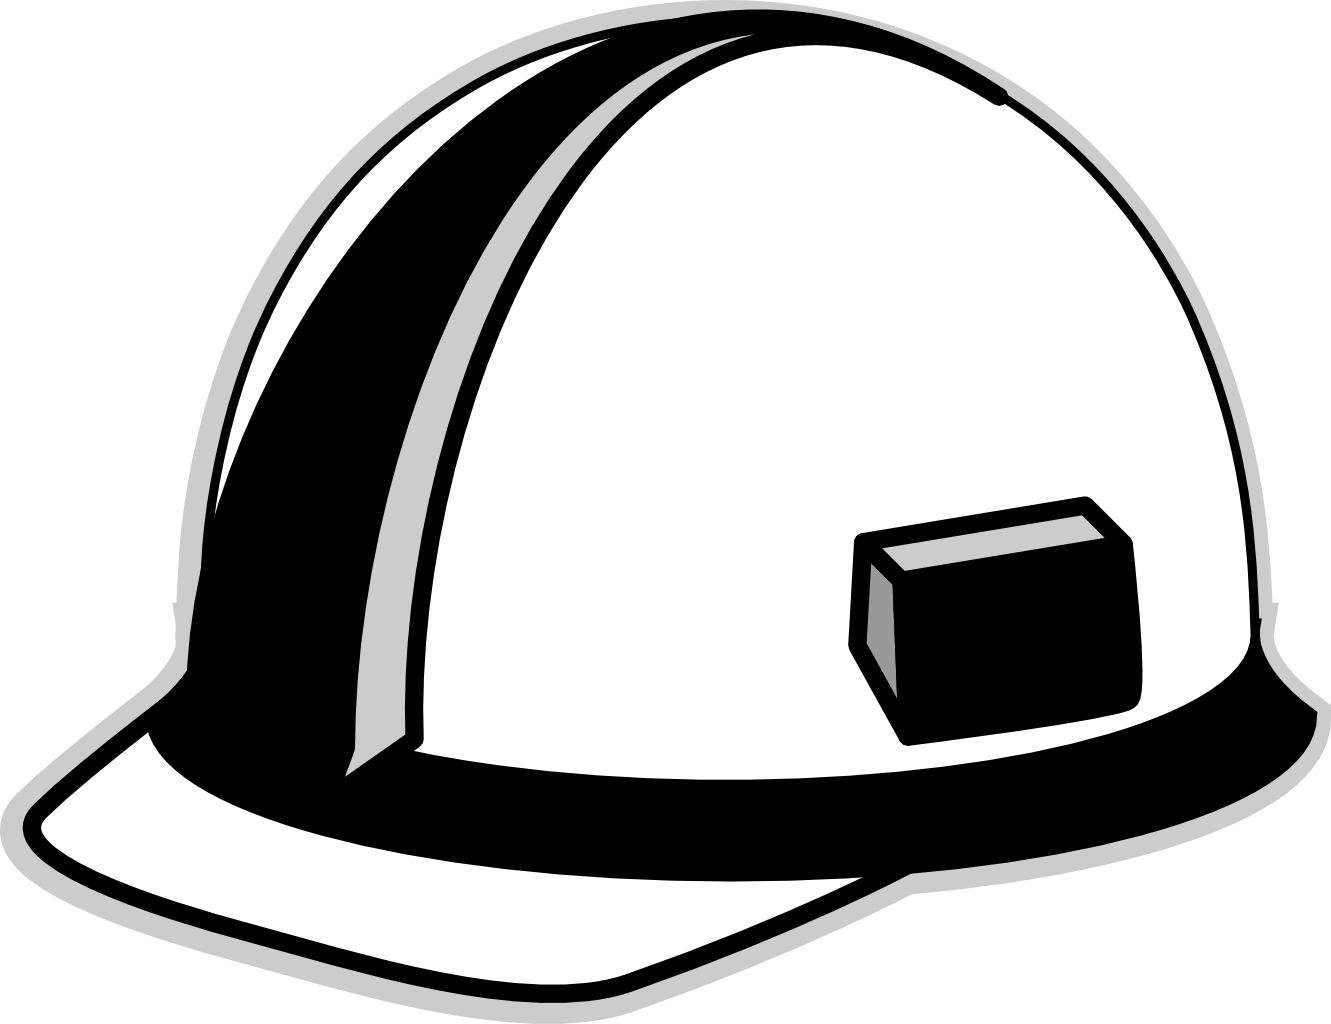 Line Drawing Hat : Hat clipart black and white panda free